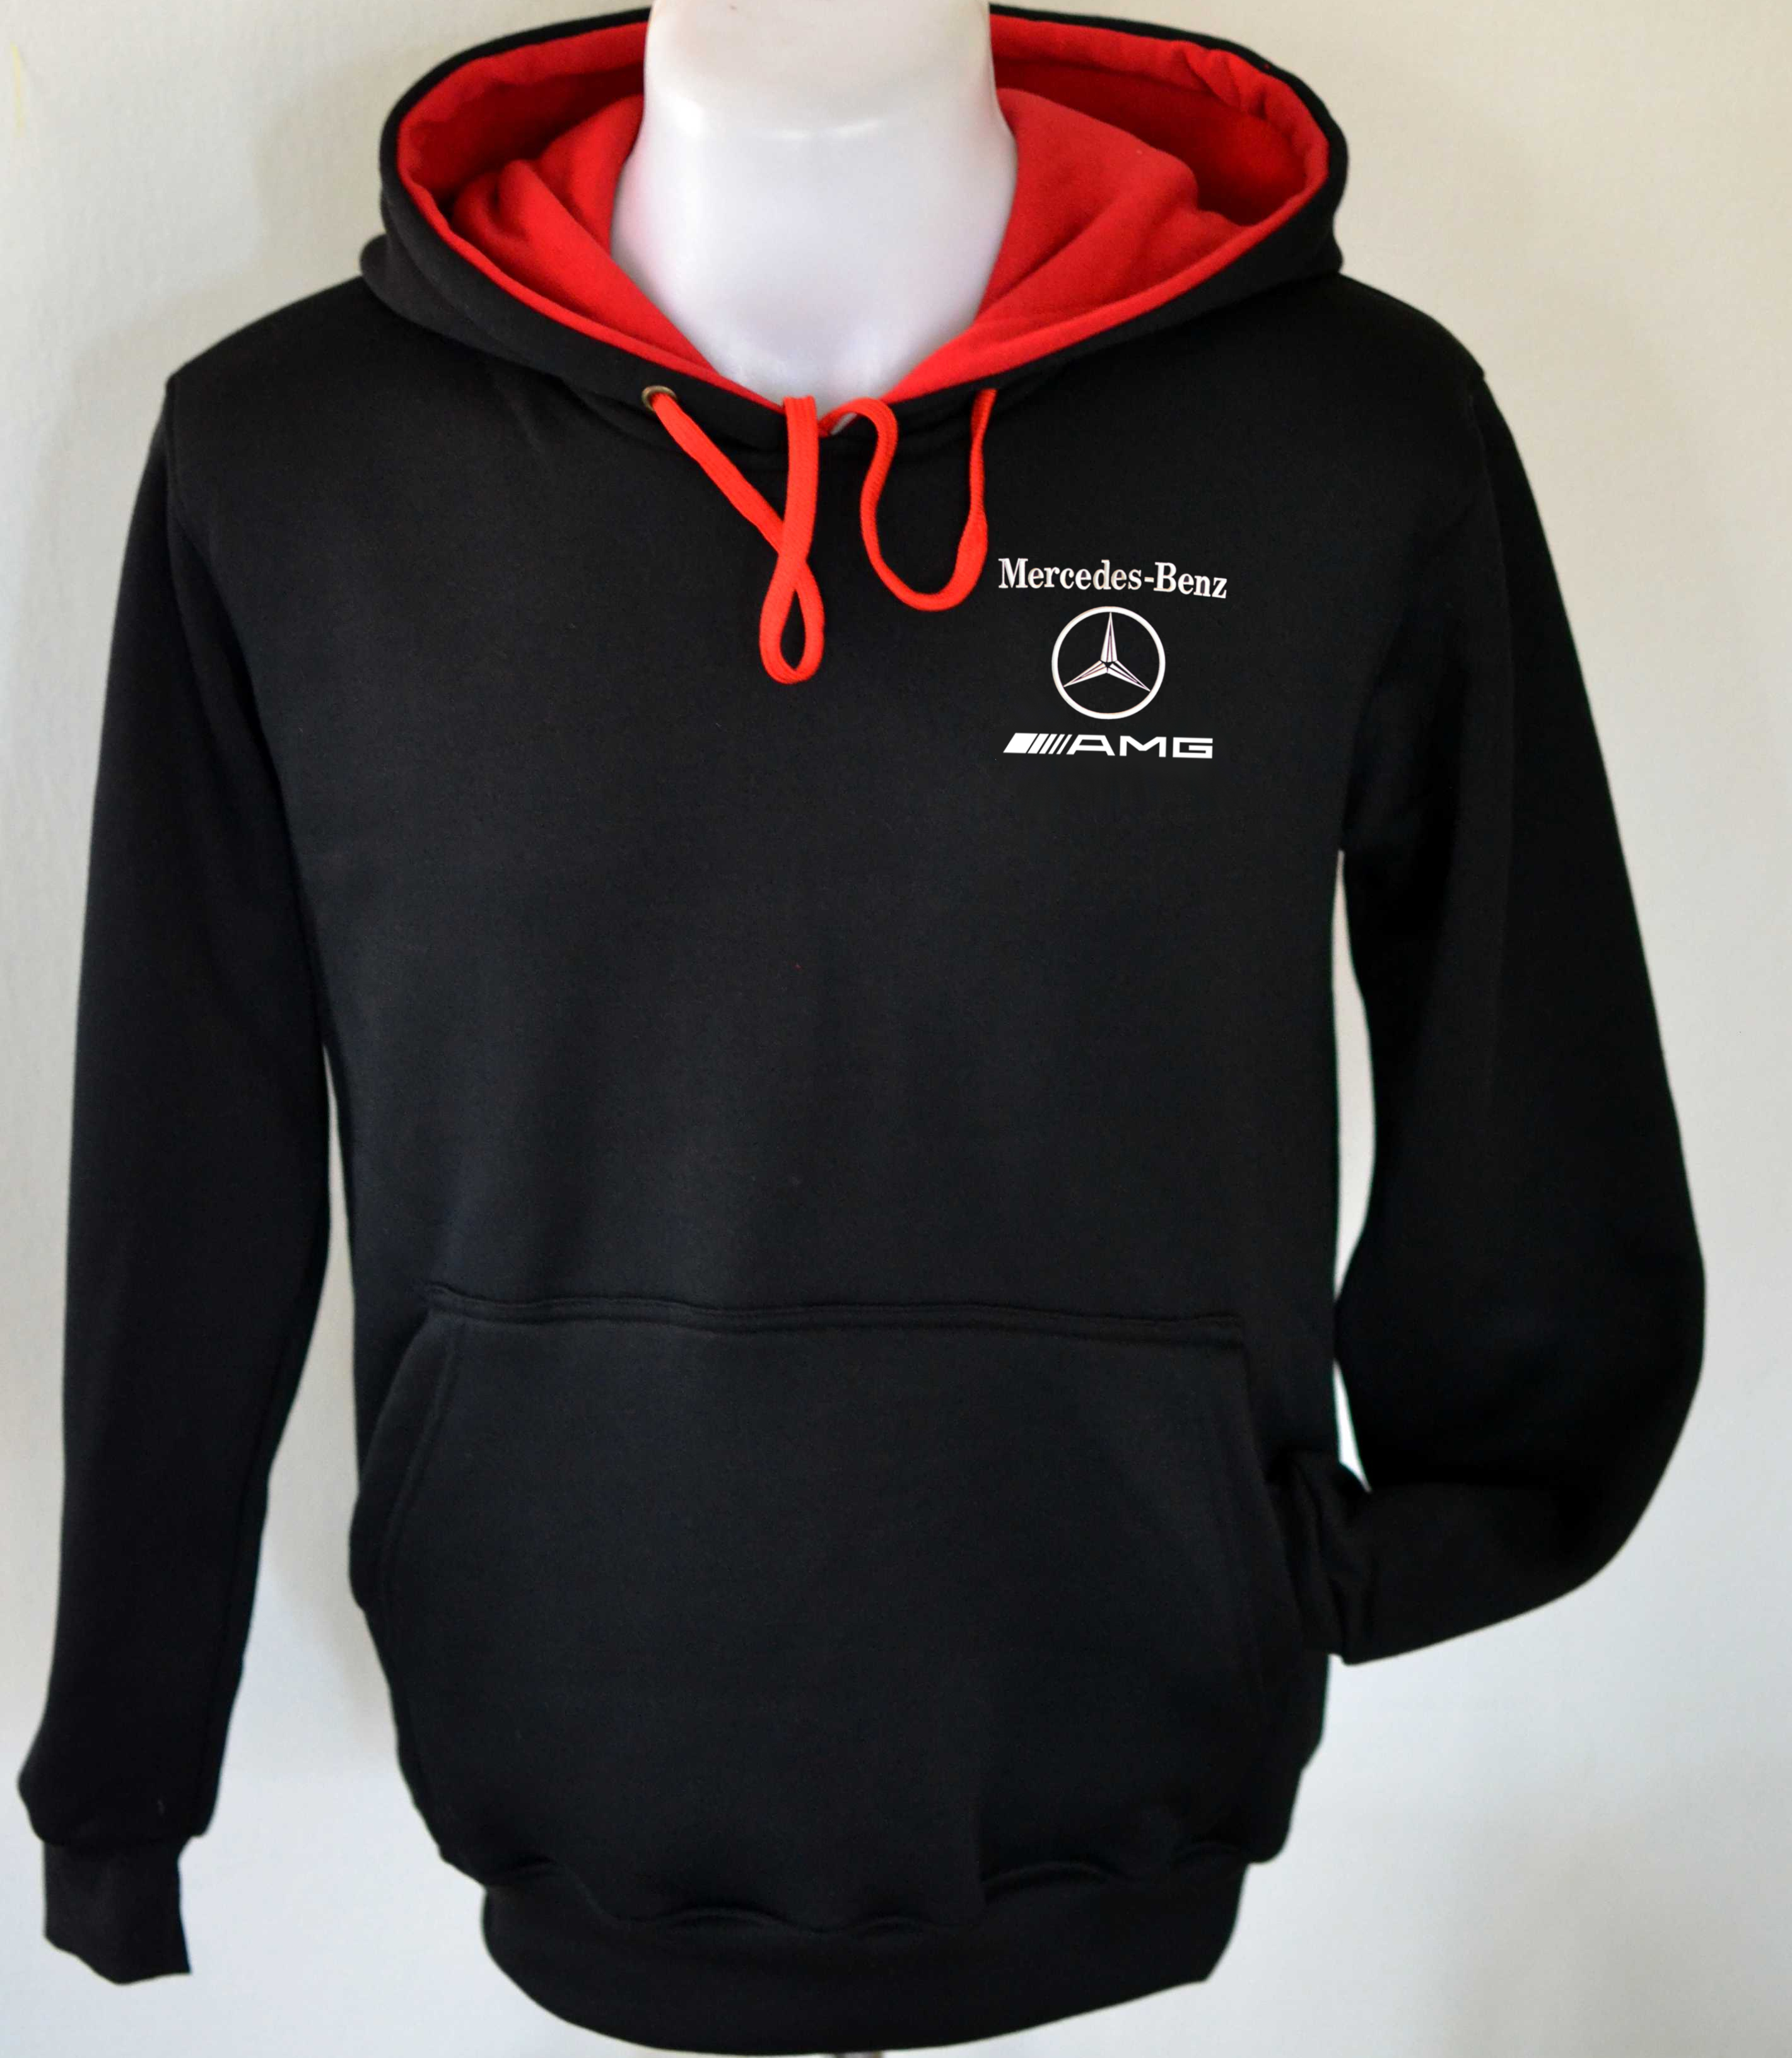 mercedes amg hoody mercedes amg kapuzenpullover. Black Bedroom Furniture Sets. Home Design Ideas